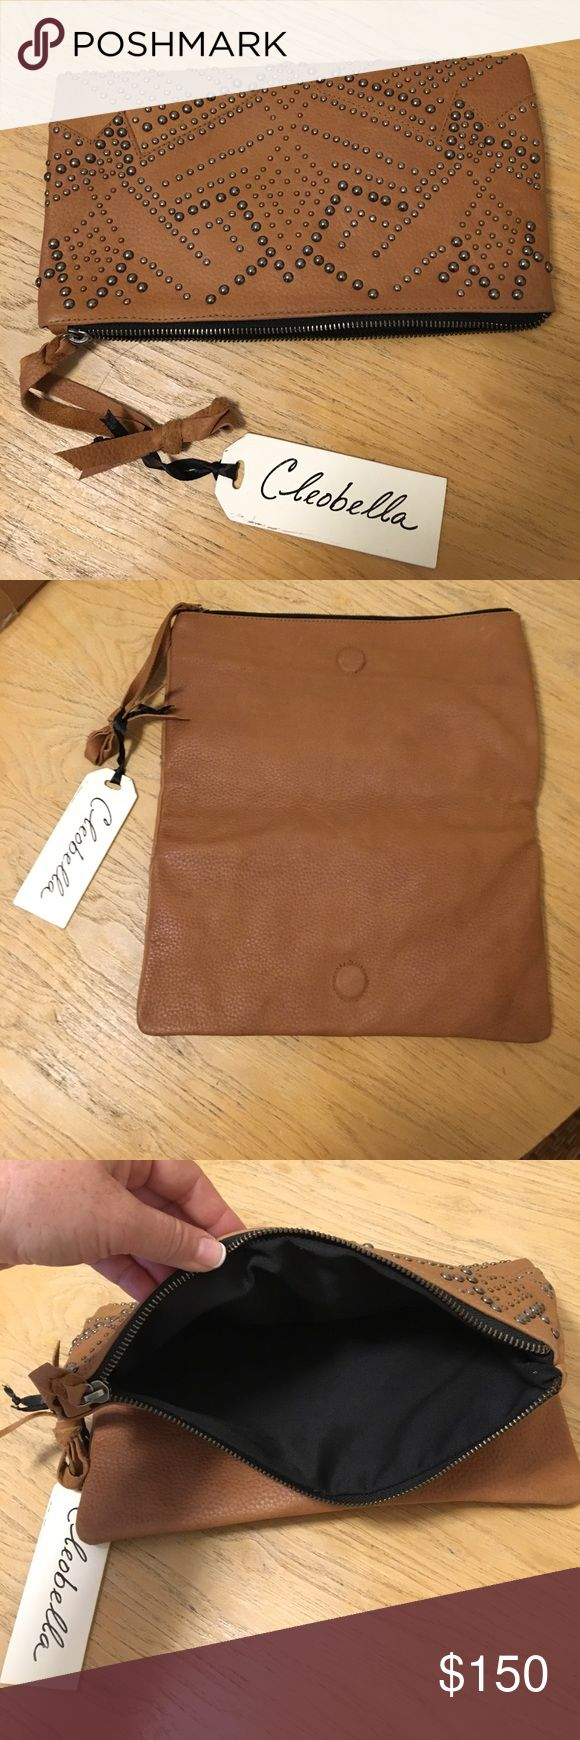 NWT CLEOBELLA studded camel clutch NWT CLEOBELLA studded camel fold over clutch, brand new with a zipper. Super edgy and chic. Love love love this clutch! Cleobella Bags Clutches & Wristlets